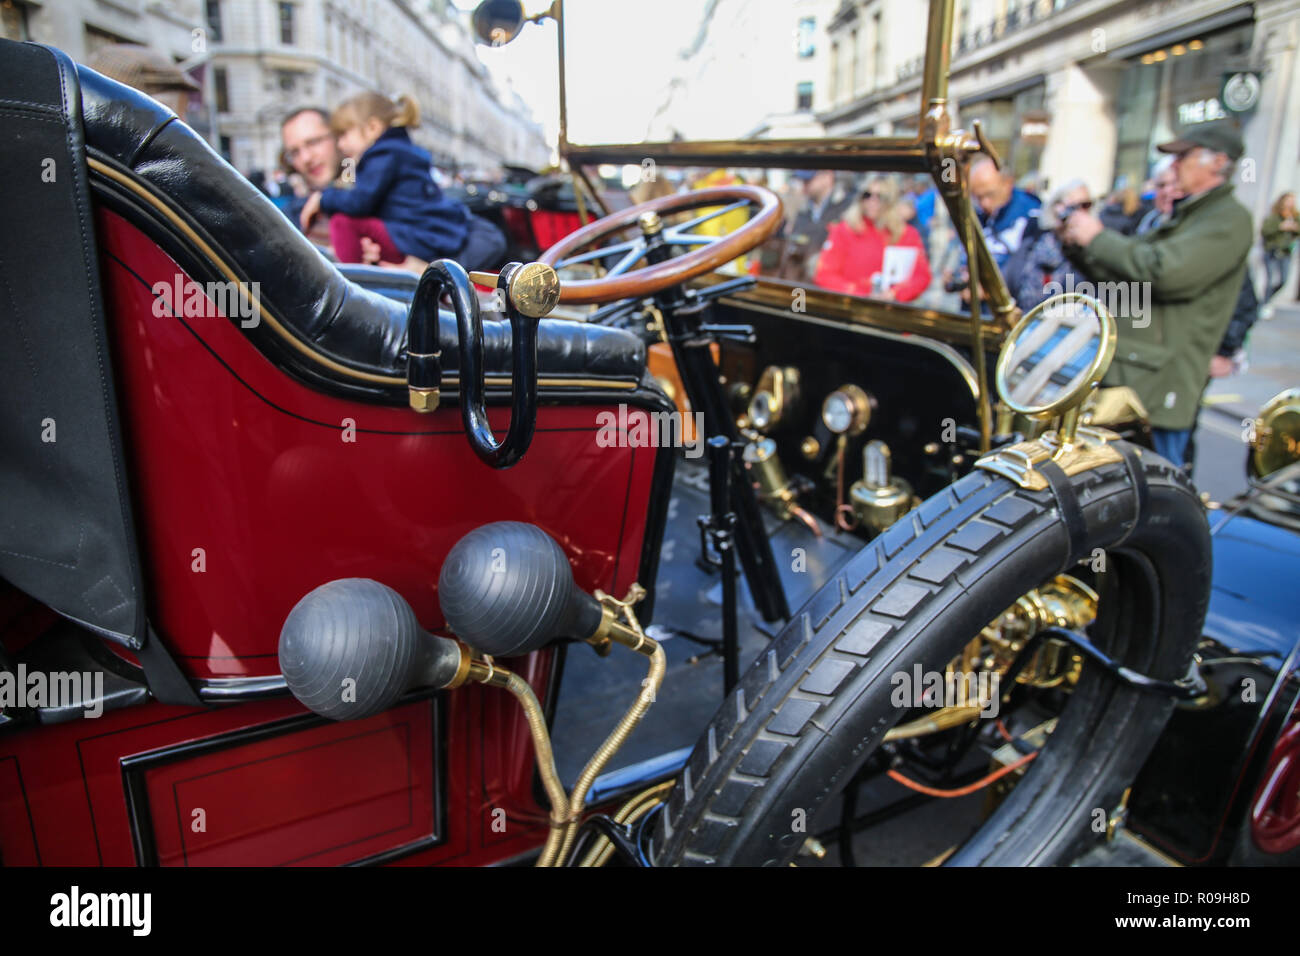 London, UK. 3 November 2018.  Bonhams London to Brighton Veteran Car Run 2018 this year the celebration will be  be  the 122nd anniversary of the original Emancipation Run of 1896 which celebrated the passing into law the Locomotives on the Highway Act so raising the speed limit for 'light automobiles' from 4 mph to 14 mph and abolishing the need for a man to walk in front of all vehicles waving a red flag.@Paul Quezada-Neiman/Alamy Live News Stock Photo